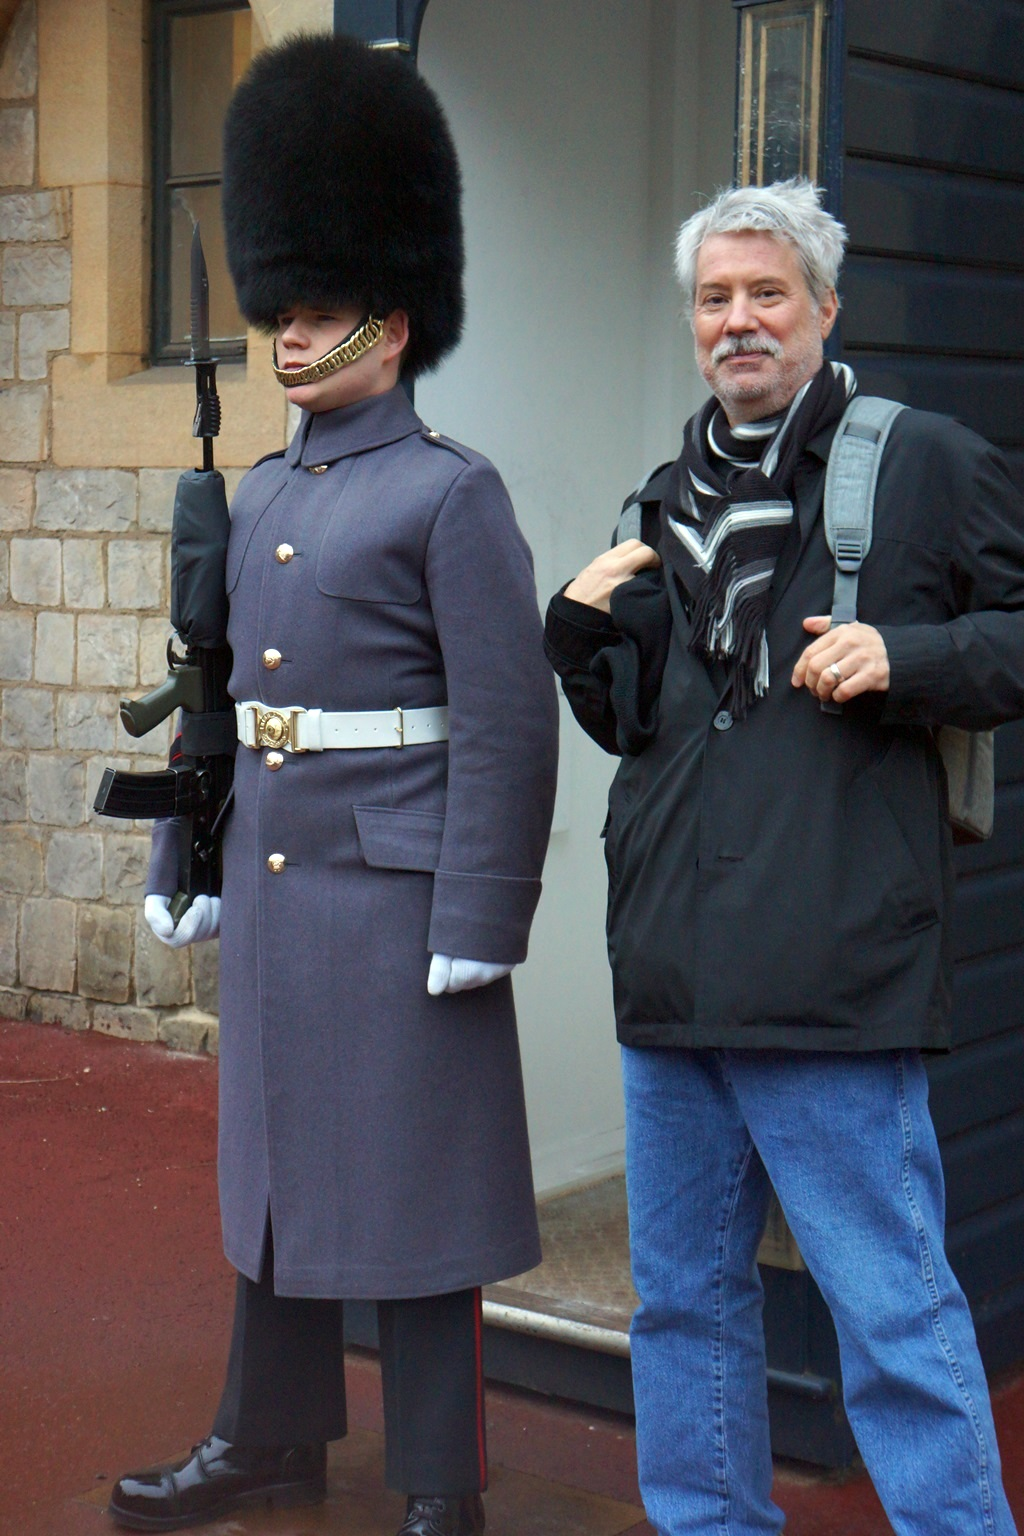 blake-royal-guard-windsor-england